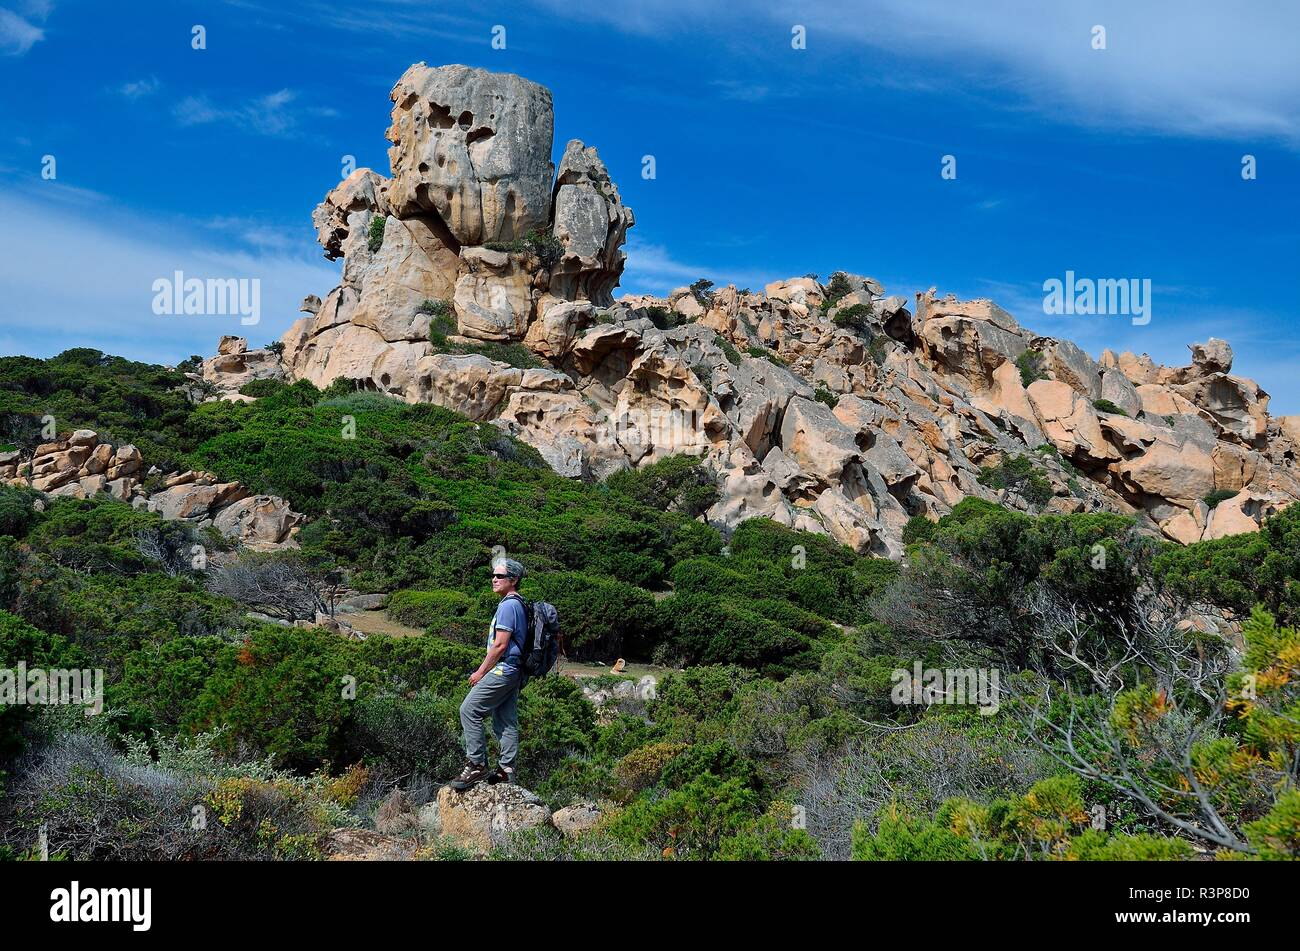 Taffonis in pink granites along the coastal path between Campomoro and Senetosa, Propriano Region, Corsica, France - Stock Image